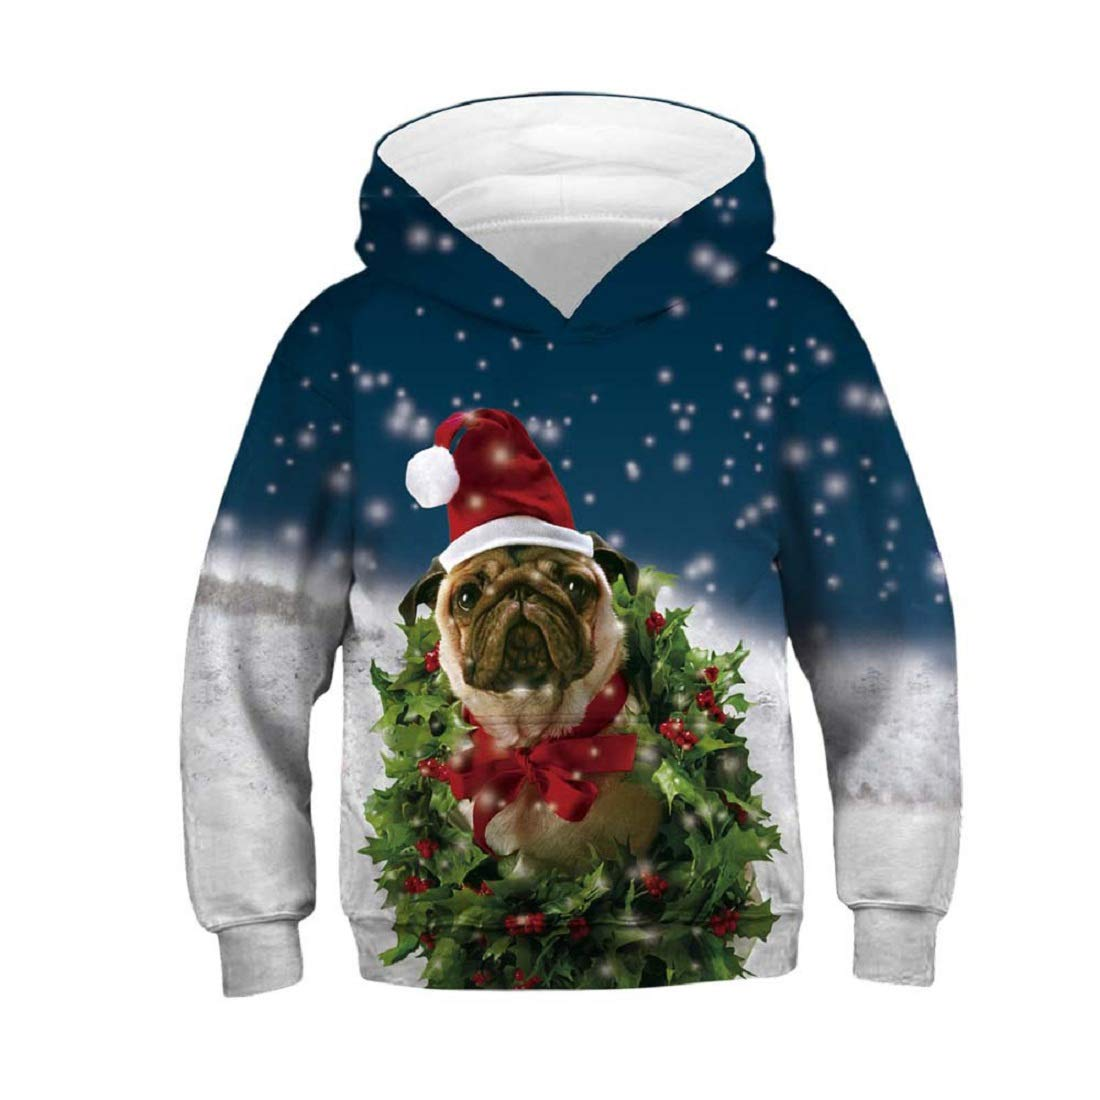 CSSD Clearance Stylish Christmas Long Sleeve Christmas Cartoon 3D Digital Print Hoodie Sweater Jackets (C, 8T)